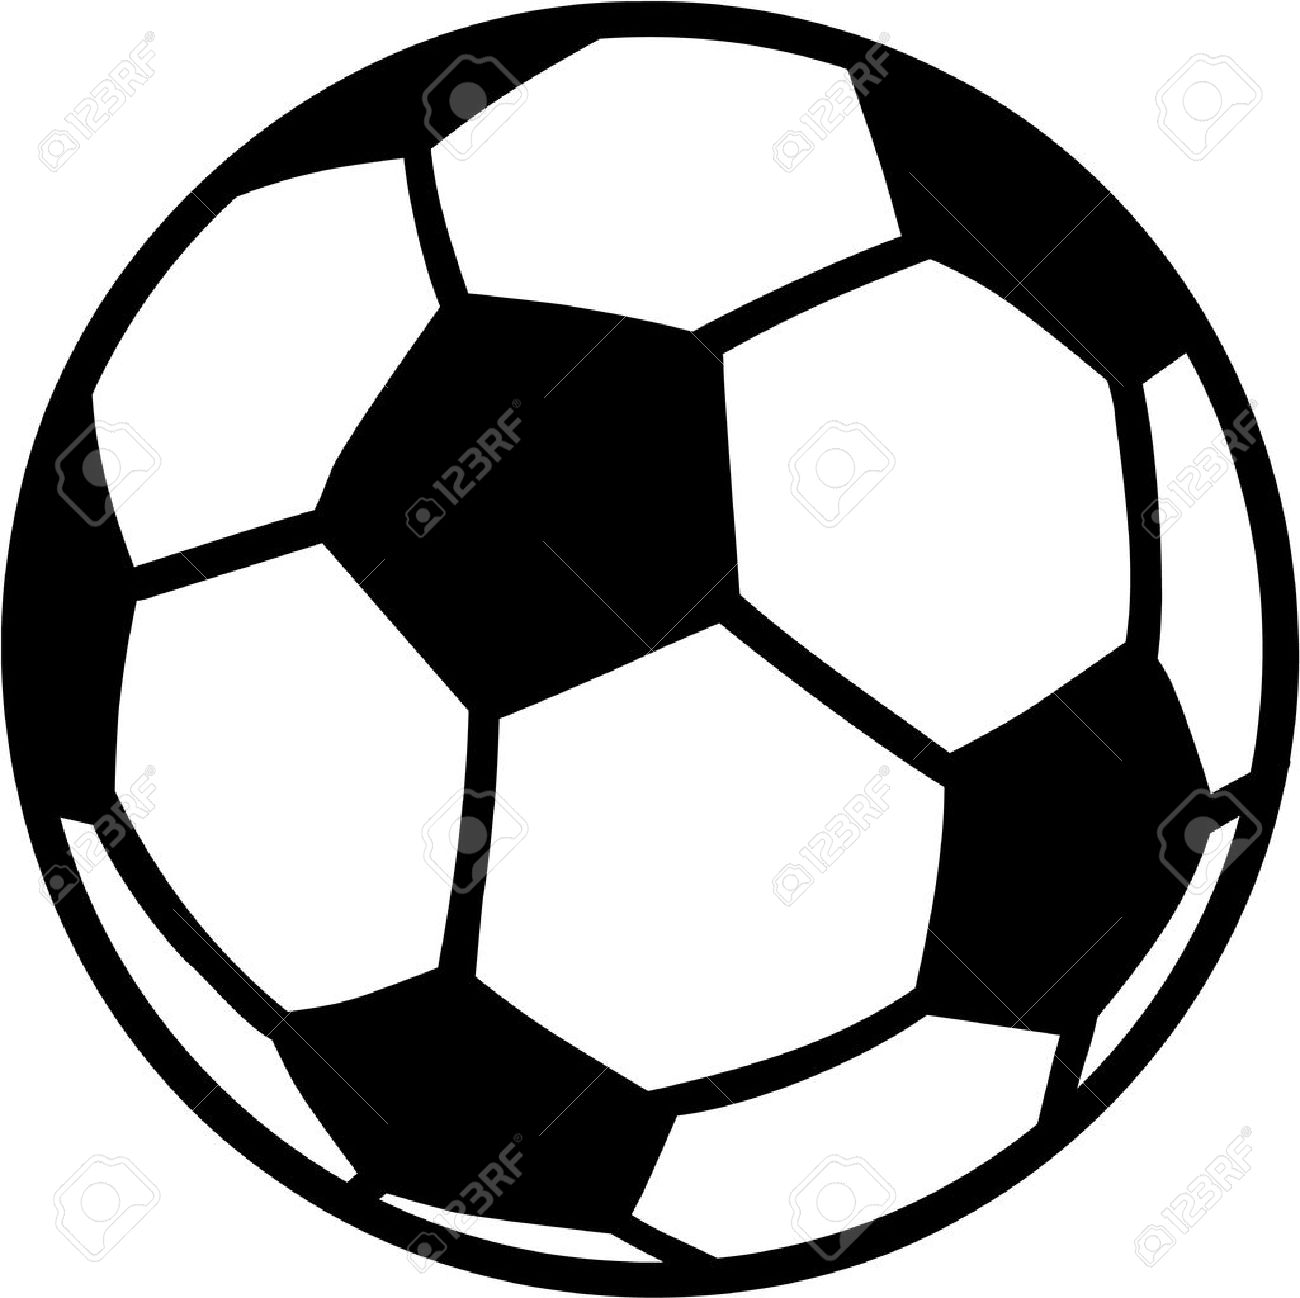 soccer ball royalty free cliparts vectors and stock illustration rh 123rf com soccer ball vector png soccer ball vector free